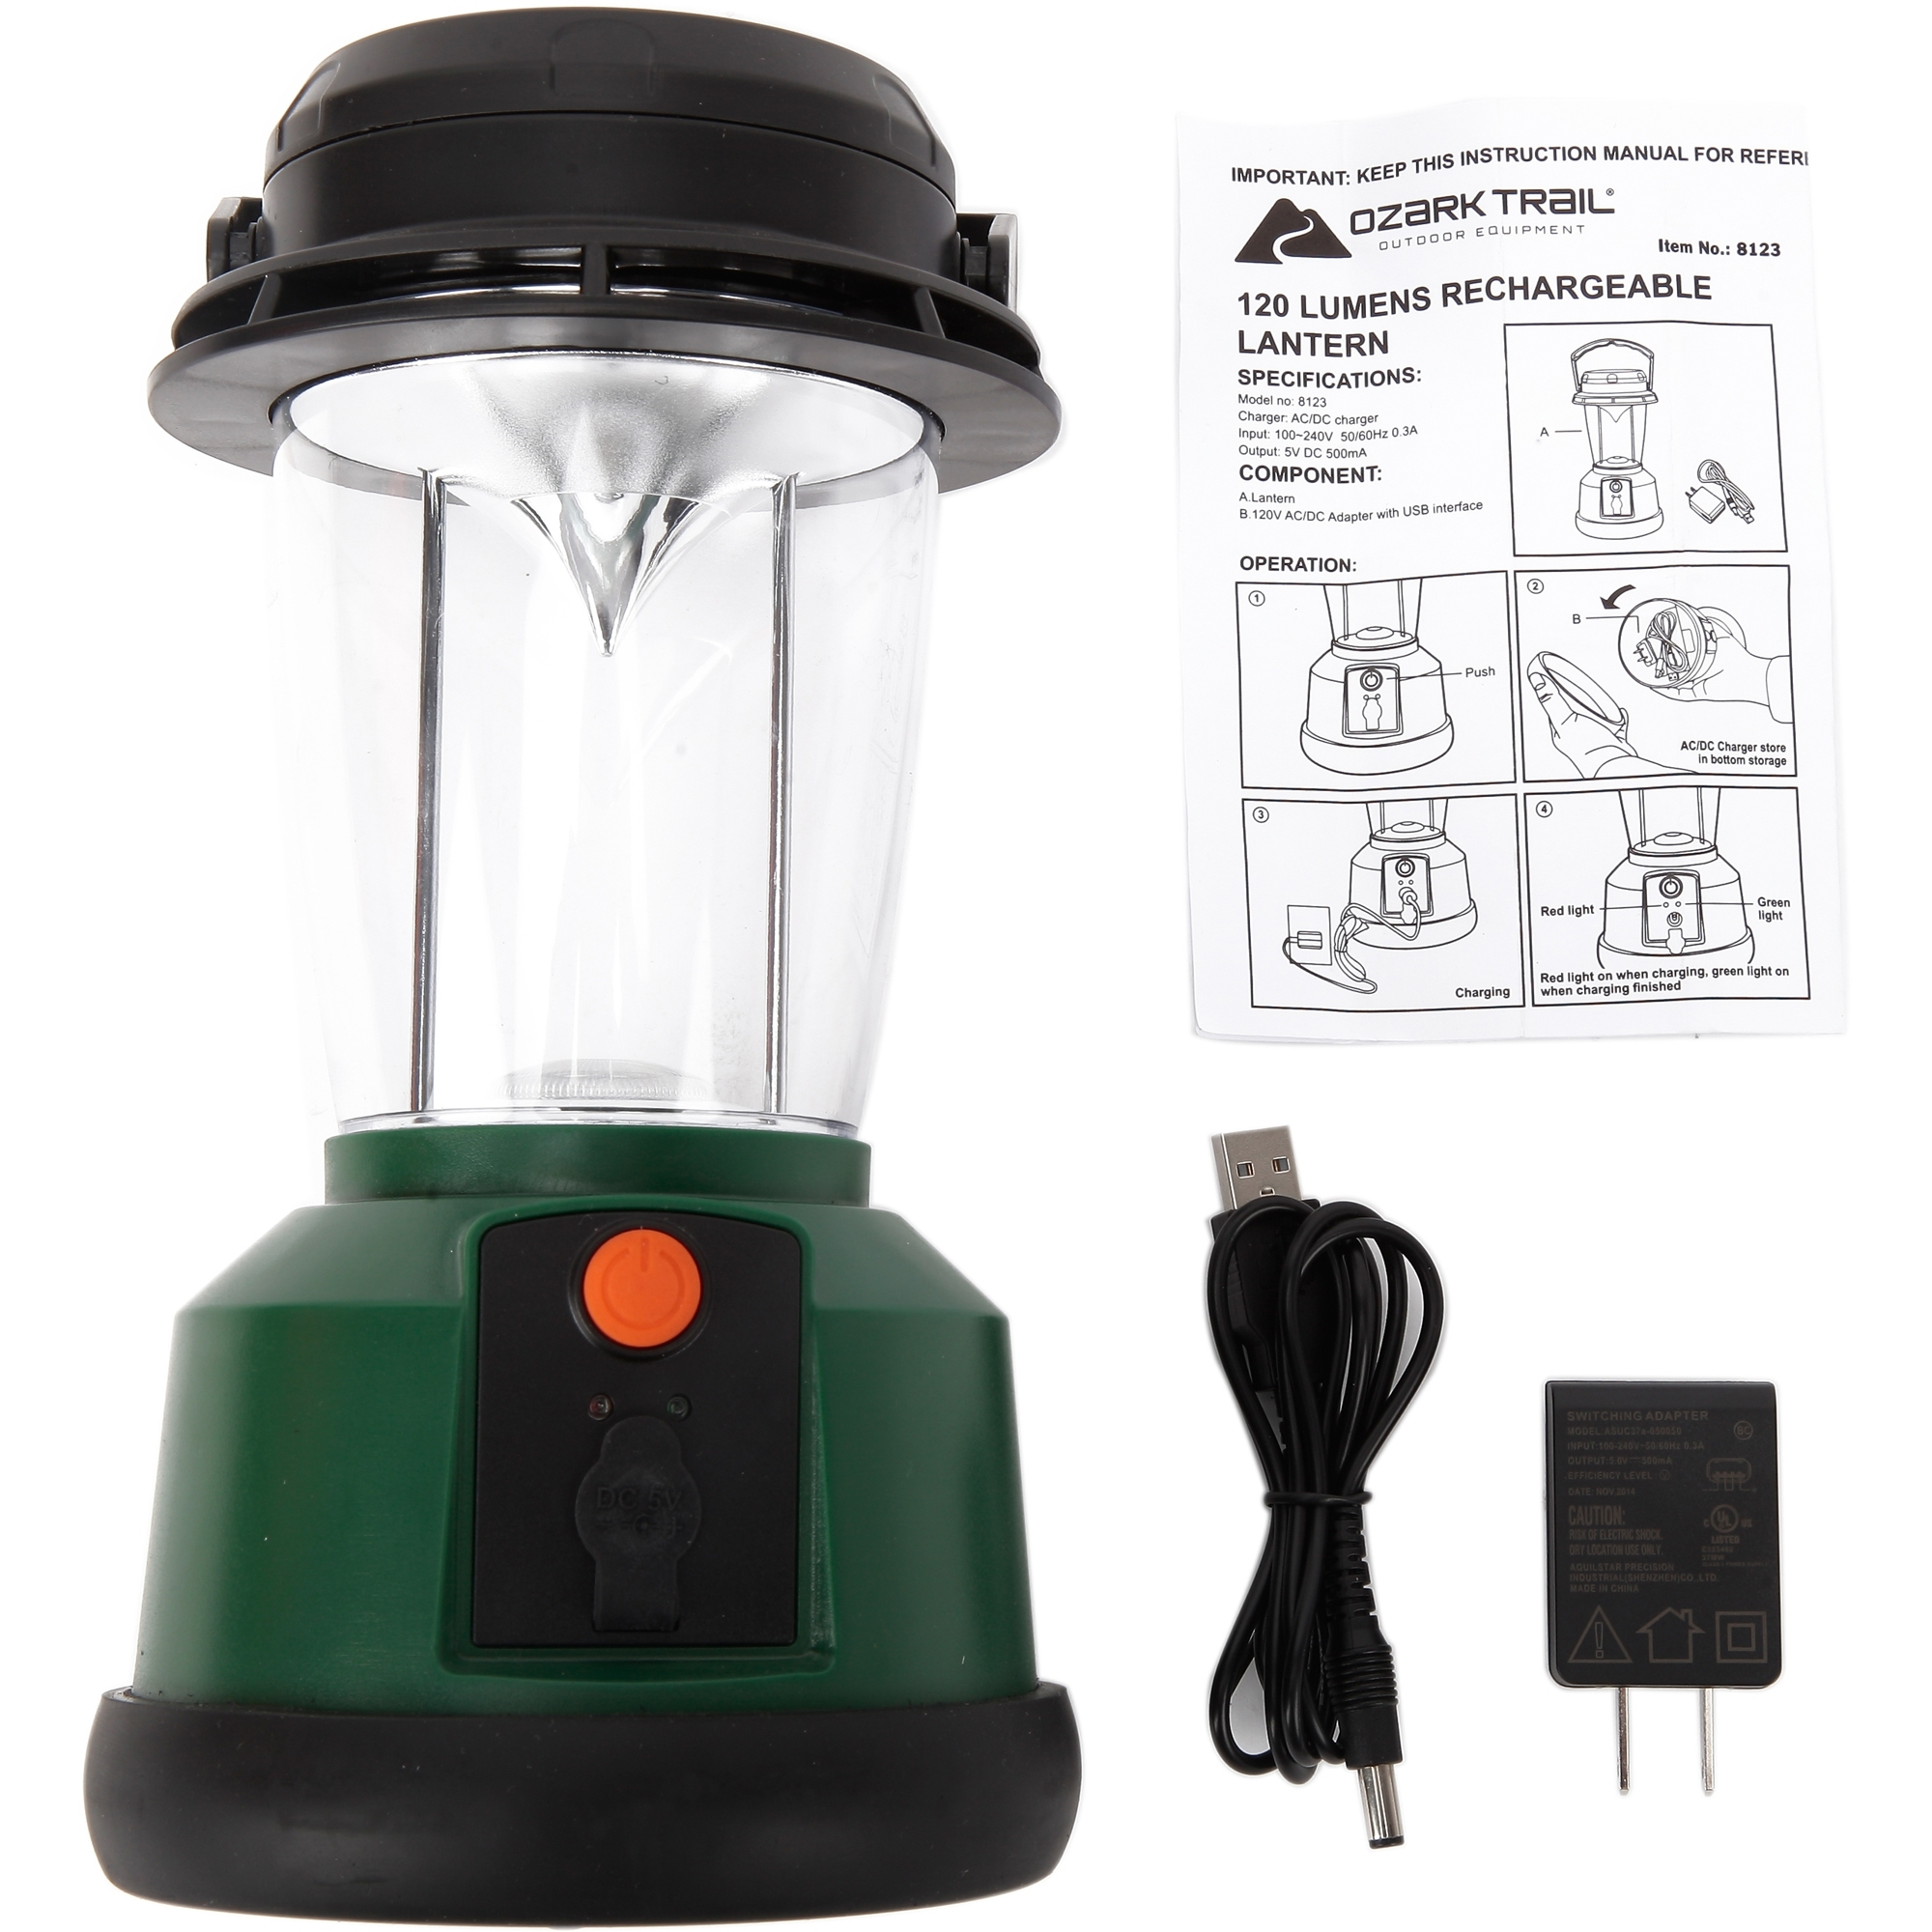 Led Rechargeable Lantern With 3 Mods And Usb Interface, 120 Lumens Pertaining To Outdoor Rechargeable Lanterns (View 12 of 20)